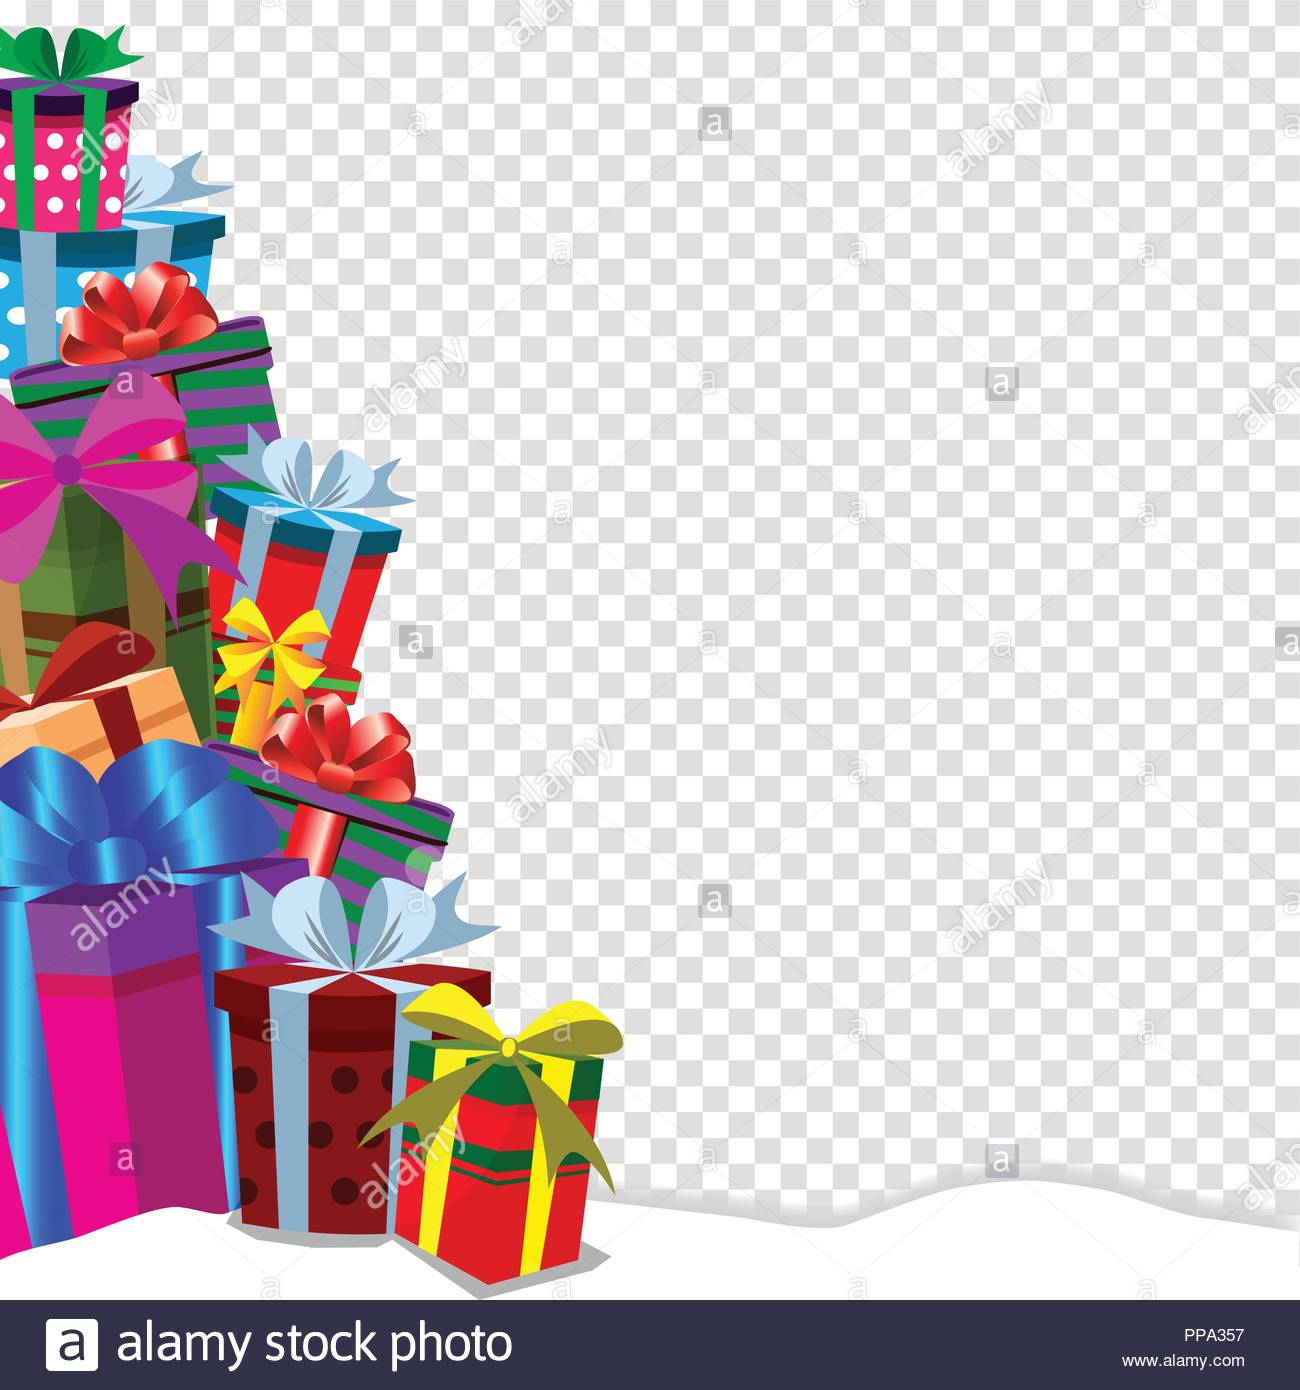 Festive holiday background with gifts in traditional style.